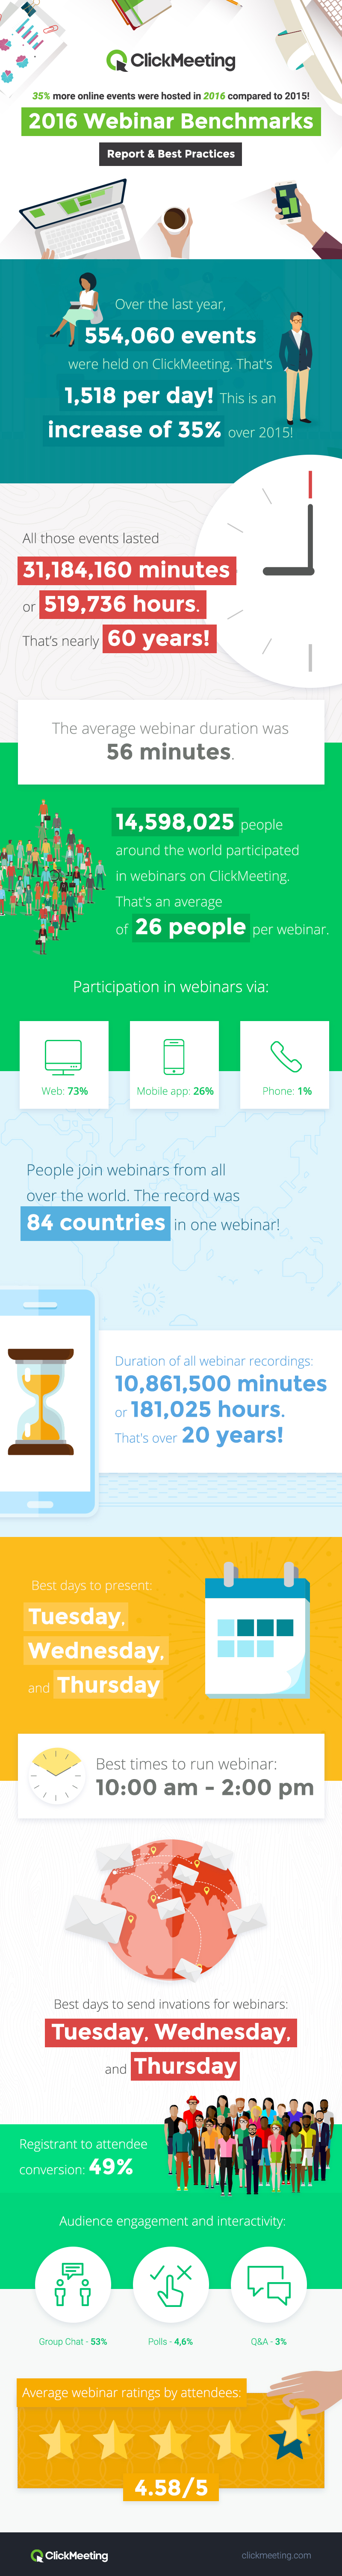 2016 Webinar Benchmarks Report & Best Practices Introduction Over the last year, we've collected robust information about webinar trends and best practices that we believe will provide valuable insights and information as you break into webinars for the first time or seek new ways to improve your webinars. Our research is based on all events we hosted in 2016: • 554,060 events. That's 10,655 per week, 1,518 per day! • Lasting 31,184,160 minutes – or 519,736 hours. That's 59 years and 4 months! • With 14,598,025 attendees. That's almost 40,000 per day! Best day to present: Tuesday, Wednesday, and Thursday Scheduling and timing are important to help drive webinar attendance. Schedule your webinar on days when people are open and free. Everyone knows that Mondays are usually busy as people try to catch up from the weekend and plan out their week, so it's no surprise that Mondays aren't a great day for webinars. Friday, Saturday, and Sunday are also bad for obvious reasons - it's the weekend. That leaves Tuesday, Wednesday, and Thursday as the best options for hosting your webinar. Best times to run a webinar: 10:00 am - 2:00 pm Not only is there a best day of the week, but the timing of your webinar can have a huge impact on the number of attendees as well. First, try to pick a time that works for all time zones to allow more attendees to attend. Choosing a time that caters to both west and east coast is always ideal. Hosting a webinar during lunch hours is often a good idea, to give people the low-key option of watching your webinar while enjoying their lunch. Late morning or early afternoon are usually great times to host a webinar as well. Best Days to Send Invitations for Webinars Tuesday, Wednesday, and Thursday Promoting your webinar is what drives people to register and is the only way to get people to attend. The best time to send emails to promote your webinar coincide with the best days to host your webinar. This means that emails sent Tuesday, Wednesday, and Thursday will get you the highest open rate and the most webinar registrants. Keep this in mind when creating your promotional calendar for your webinar. Average webinar length 56 minutes While you can have successful webinars that run shorter than the average time, webinars that run over an hour usually see very few attendees remaining attentive into the second hour. The best option is to structure your presentation with the most important items at the beginning and less important items at the end because more people leave at the beginning if there isn't something that draws them in. Announcing that there is a Q&A session at the end can encourage attendees to stay tuned to your webinar for a chance to have their questions answered. Create a post-webinar blog post to answer any questions you were unable to answer during the Q&A session — it can be a great way to connect more deeply with your audience. Registrant to Attendee Conversion Registrant to Attendee Percentage: 49% Average attendance: 26 attendees per event Although the average is 26 attendees per webinar, it takes almost three times as many registrants to get this turnout. This is for a variety of reasons. Some people may have signed up just for access to the recording. Some may end up being busier than expected. And some may forget what made them sign up for the webinar in the first place. Whatever the reason, the important thing to remember is that you still have an interested lead that you can nurture. Average attendance via mobile app 25% Although most businesses plan to do webinars from a desktop computer, an average of 25% of attendees tune in from their mobile devices. When planning a webinar, make sure your platform supports mobile with an up-to-date, user-friendly mobile app. This should include mobile-optimized polling and chat features. Also, when designing your visual presentation, keep in mind that mobile devices have much smaller screens than desktops. Create slides that have big visuals and avoid slides with large amounts of small text. Audience engagement and interactivity Measuring audience engagement can help you see how well your topic aligned with your audience and their level of interest. You can use this data to help you plan future webinars. However, no matter how interesting your topic, it can be hard to listen to just one person talk for an hour. To improve engagement and activity during your webinars, plan fun polls, questions, and surveys to spice things up. Here are the engagement activities people interacted with and the percentage: Group Chat – 53% Polls – 4.6% Q&A - 3% Average Webinar Ratings by Attendees 4.58/5 A best practice when hosting webinars is to ask for a post-webinar evaluation. Some webinar platforms do this for you by showing an on-screen message when someone leaves your webinar. Webinar ratings let you know where you stand with your overall presentation and provide feedback on what attendees liked and any areas where you can improve future presentations. Knowing this helps you be more prepared to deliver great content in every presentation, which will drive more leads, higher retention rates, and a better message. Conclusion We've learned a lot about webinars and webinar best practices through the analysis of data collected through our unique webinar platform. We hope this research and information proves useful to you as you embark on your first webinar journey or look for ways to improve your current webinar experience. All of the data and statistics represented in this report are based on our exclusive research. About ClickMeeting ClickMeeting was founded in 2011 by GetResponse, the leading email marketing platform. The idea was to provide a complete webinar solution for businesses, large and small. Over the next five years, ClickMeeting grew so much that, in 2016, it spun off as a separate company. Our mission is to be the premier provider of flexible, self-service webinar solutions that help you reach, engage, educate, and convert your audience. ClickMeeting is rich in features that help you before, during, and after your webinar.